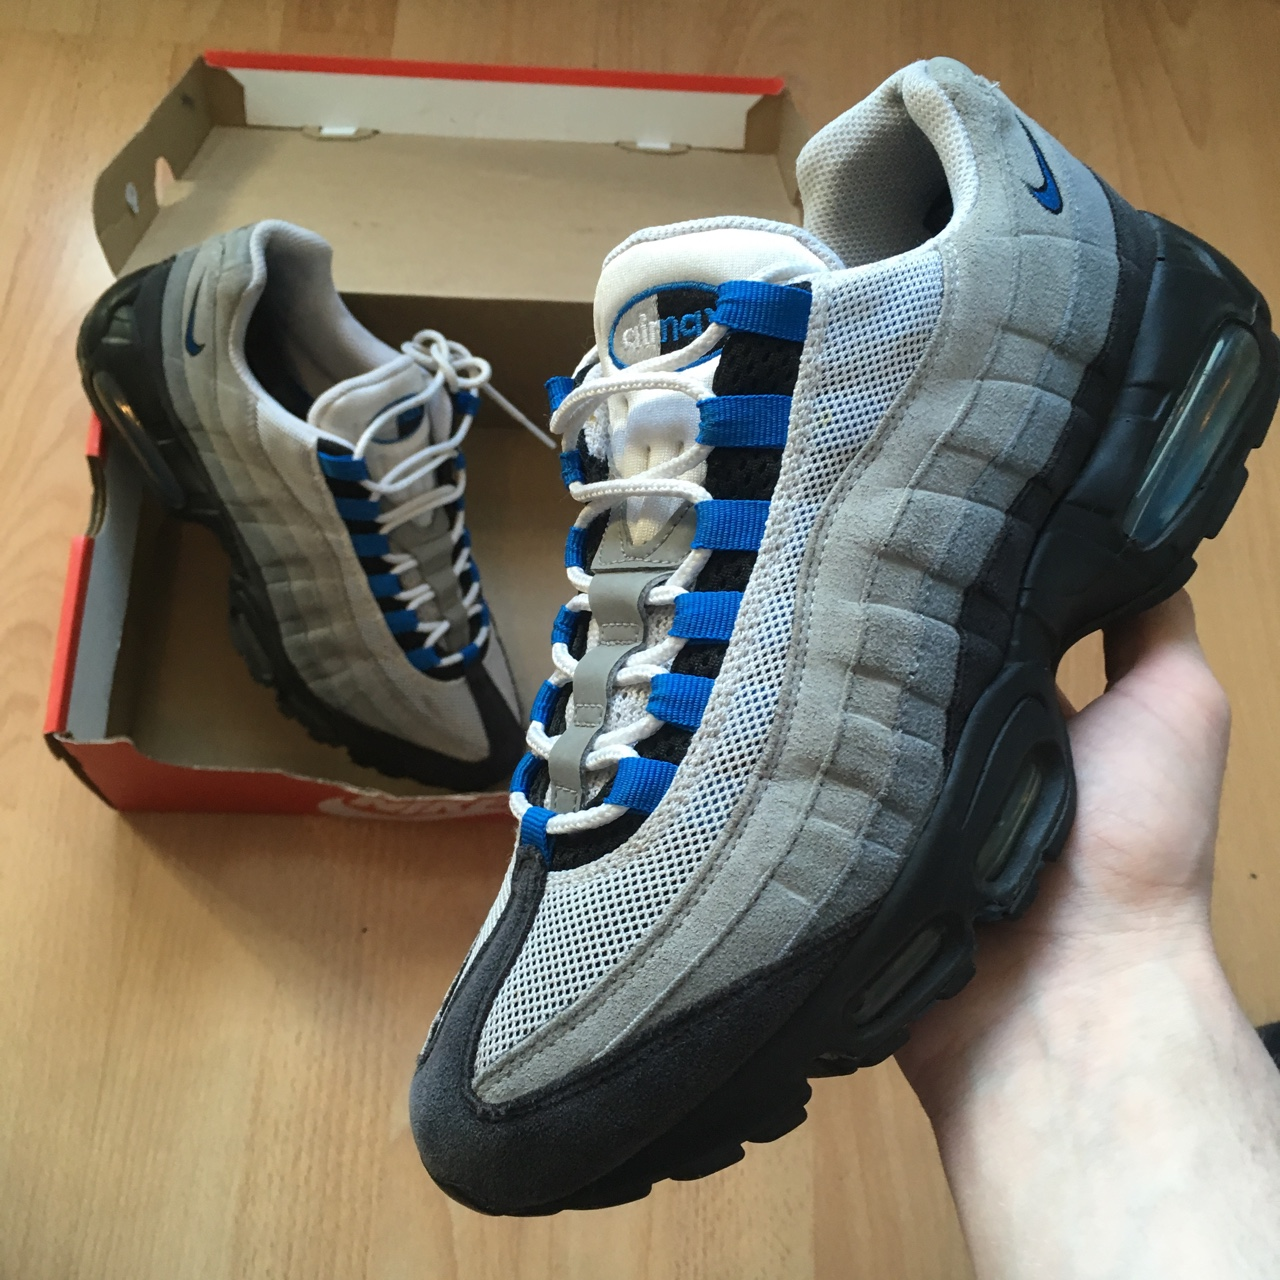 Nike Air Max 95 Spark Blue From 2013 Good Condition Depop